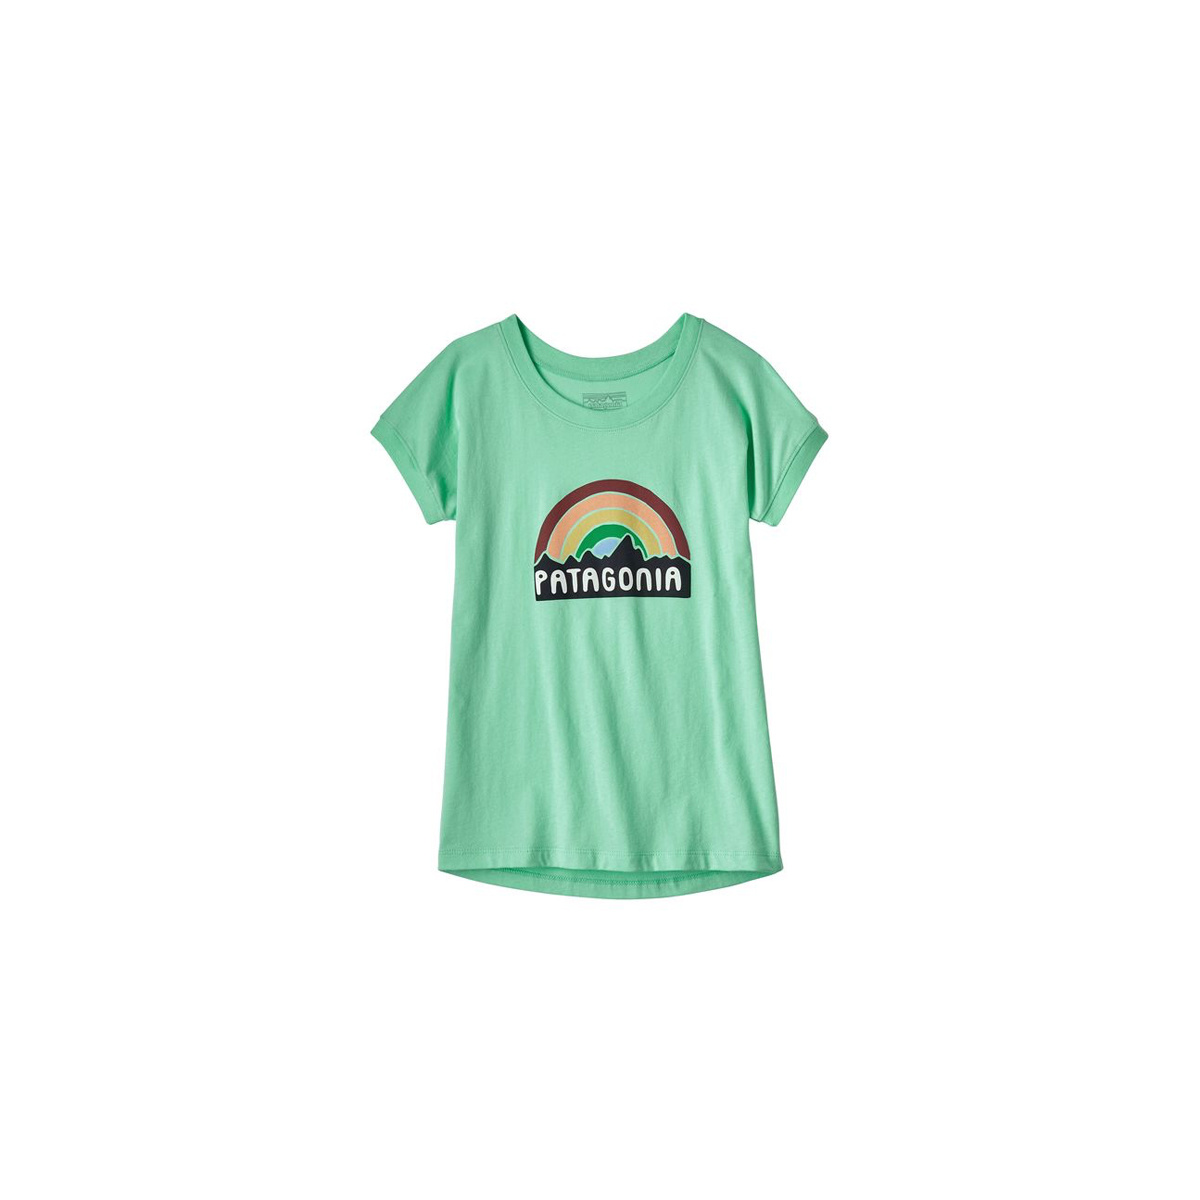 Patagonia Girl's Graphic Organic T-Shirt